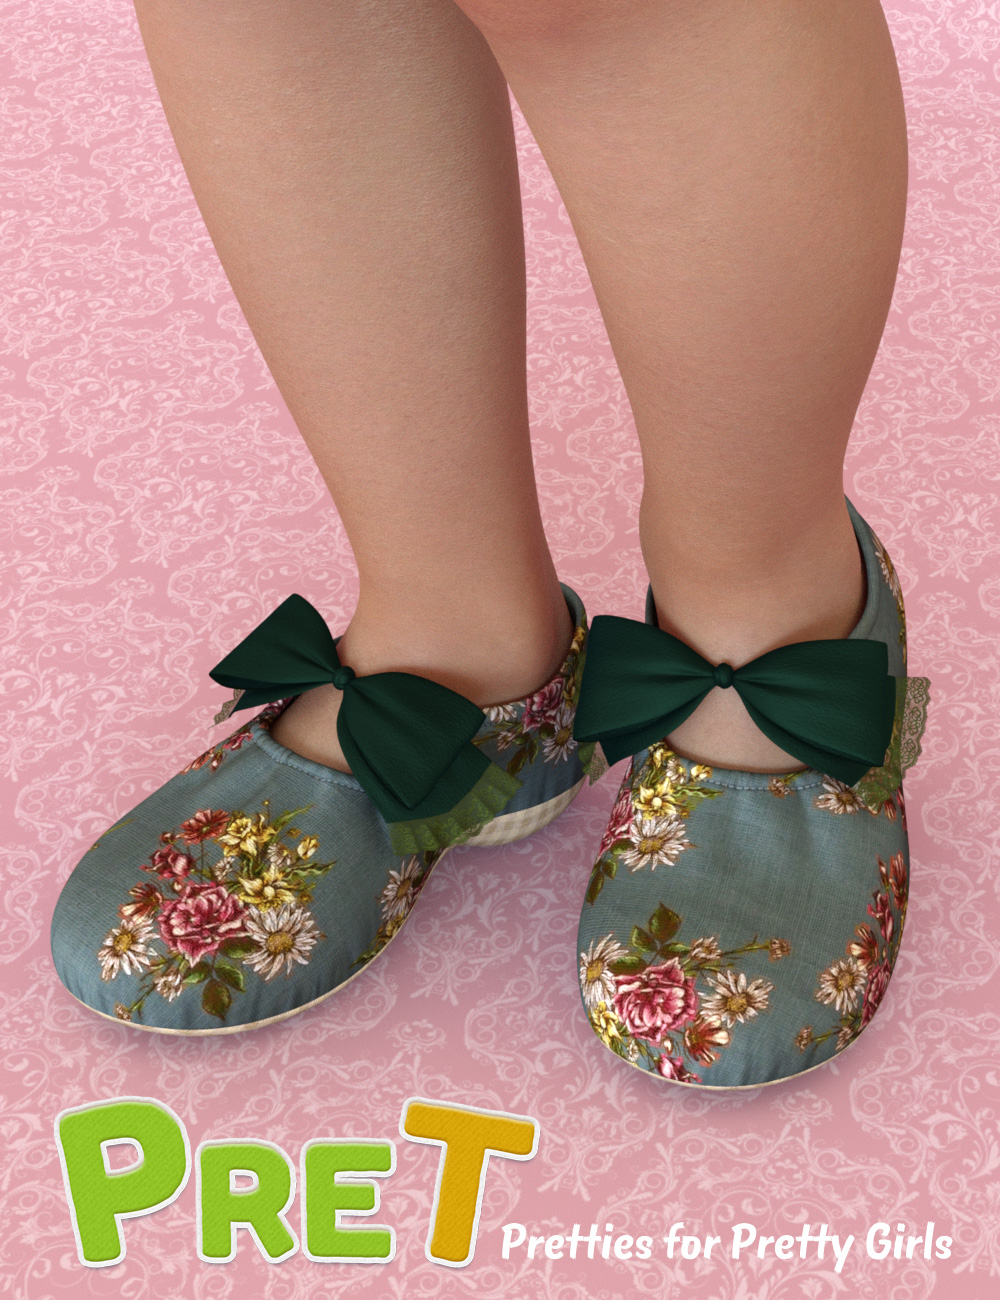 PreT Girls Soft Shoes for Genesis 8 Females by: elleque, 3D Models by Daz 3D